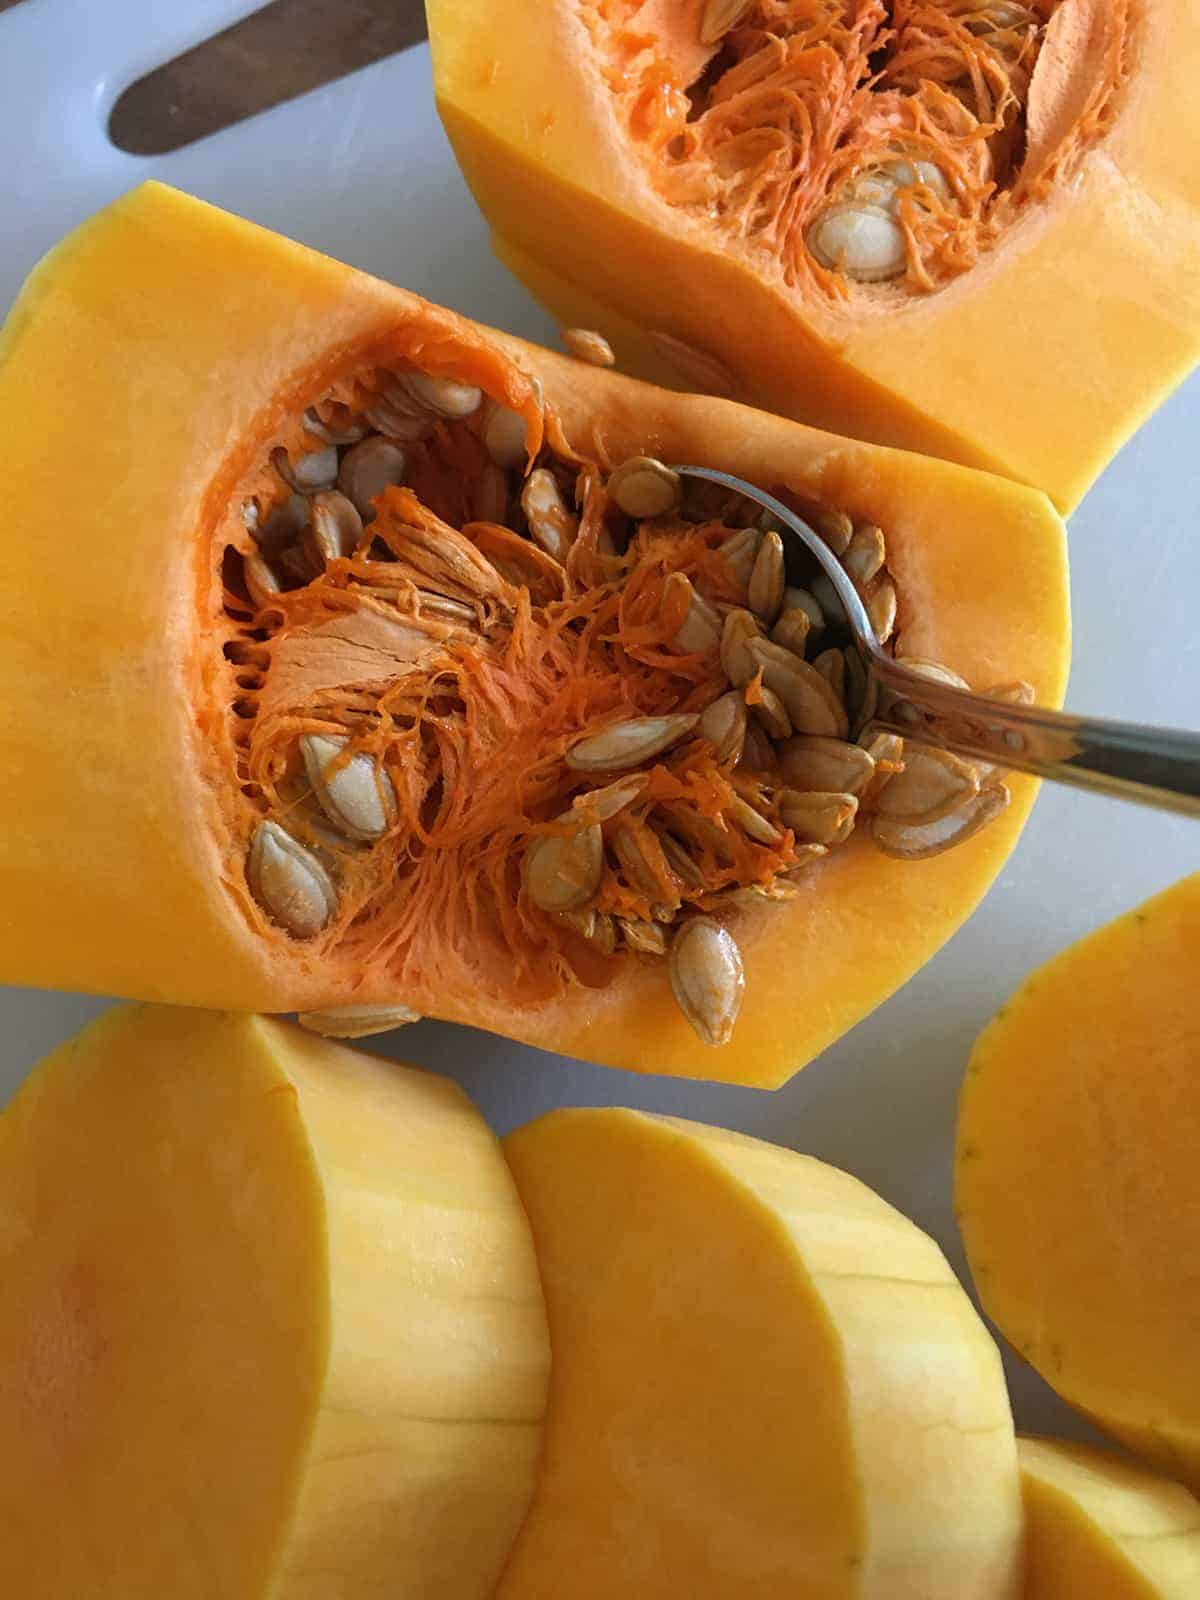 Removing the seeds from a butternut squash using a metal spoon